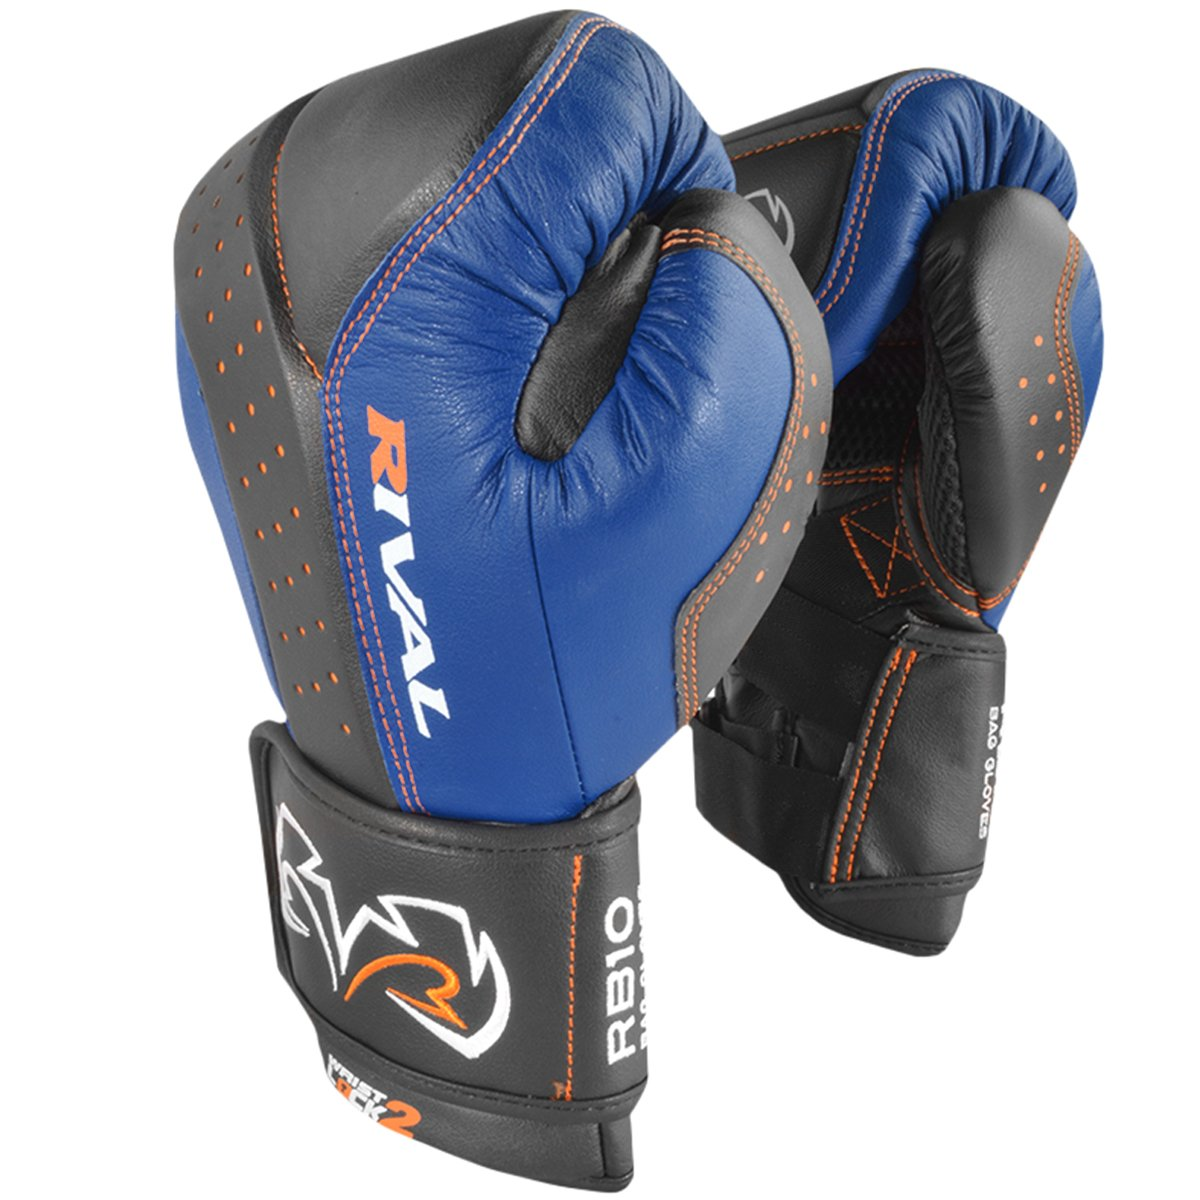 RIVAL BOXING GLOVES (RB10 INTELLI-SHOCK BAG GLOVES) (BLACK/BLUE, MEDIUM)